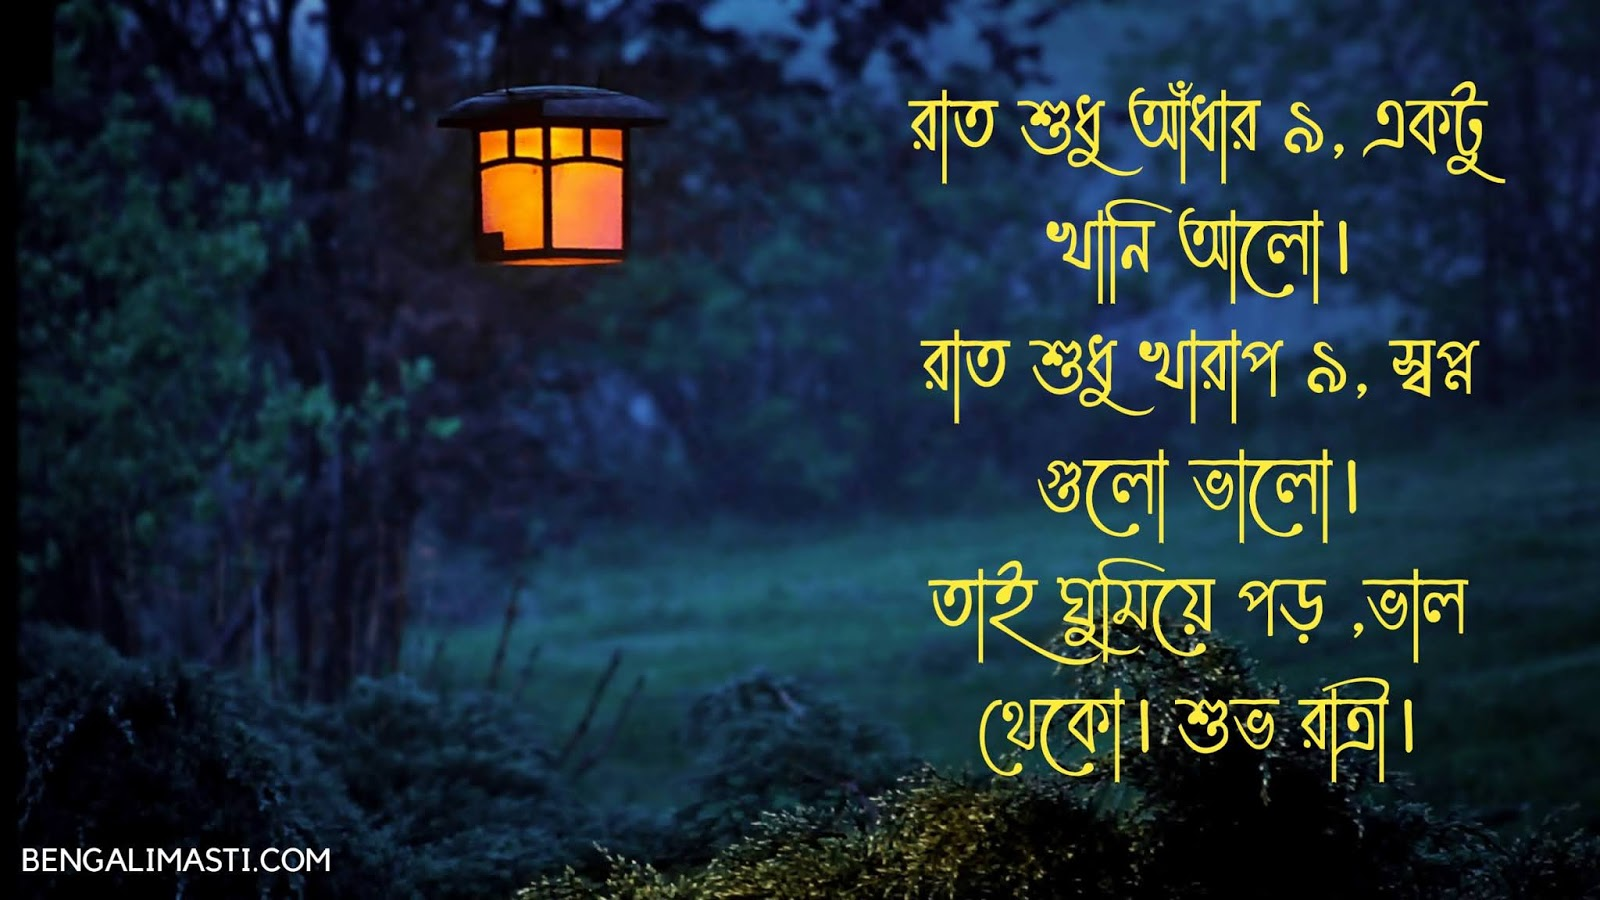 Bangla good night status